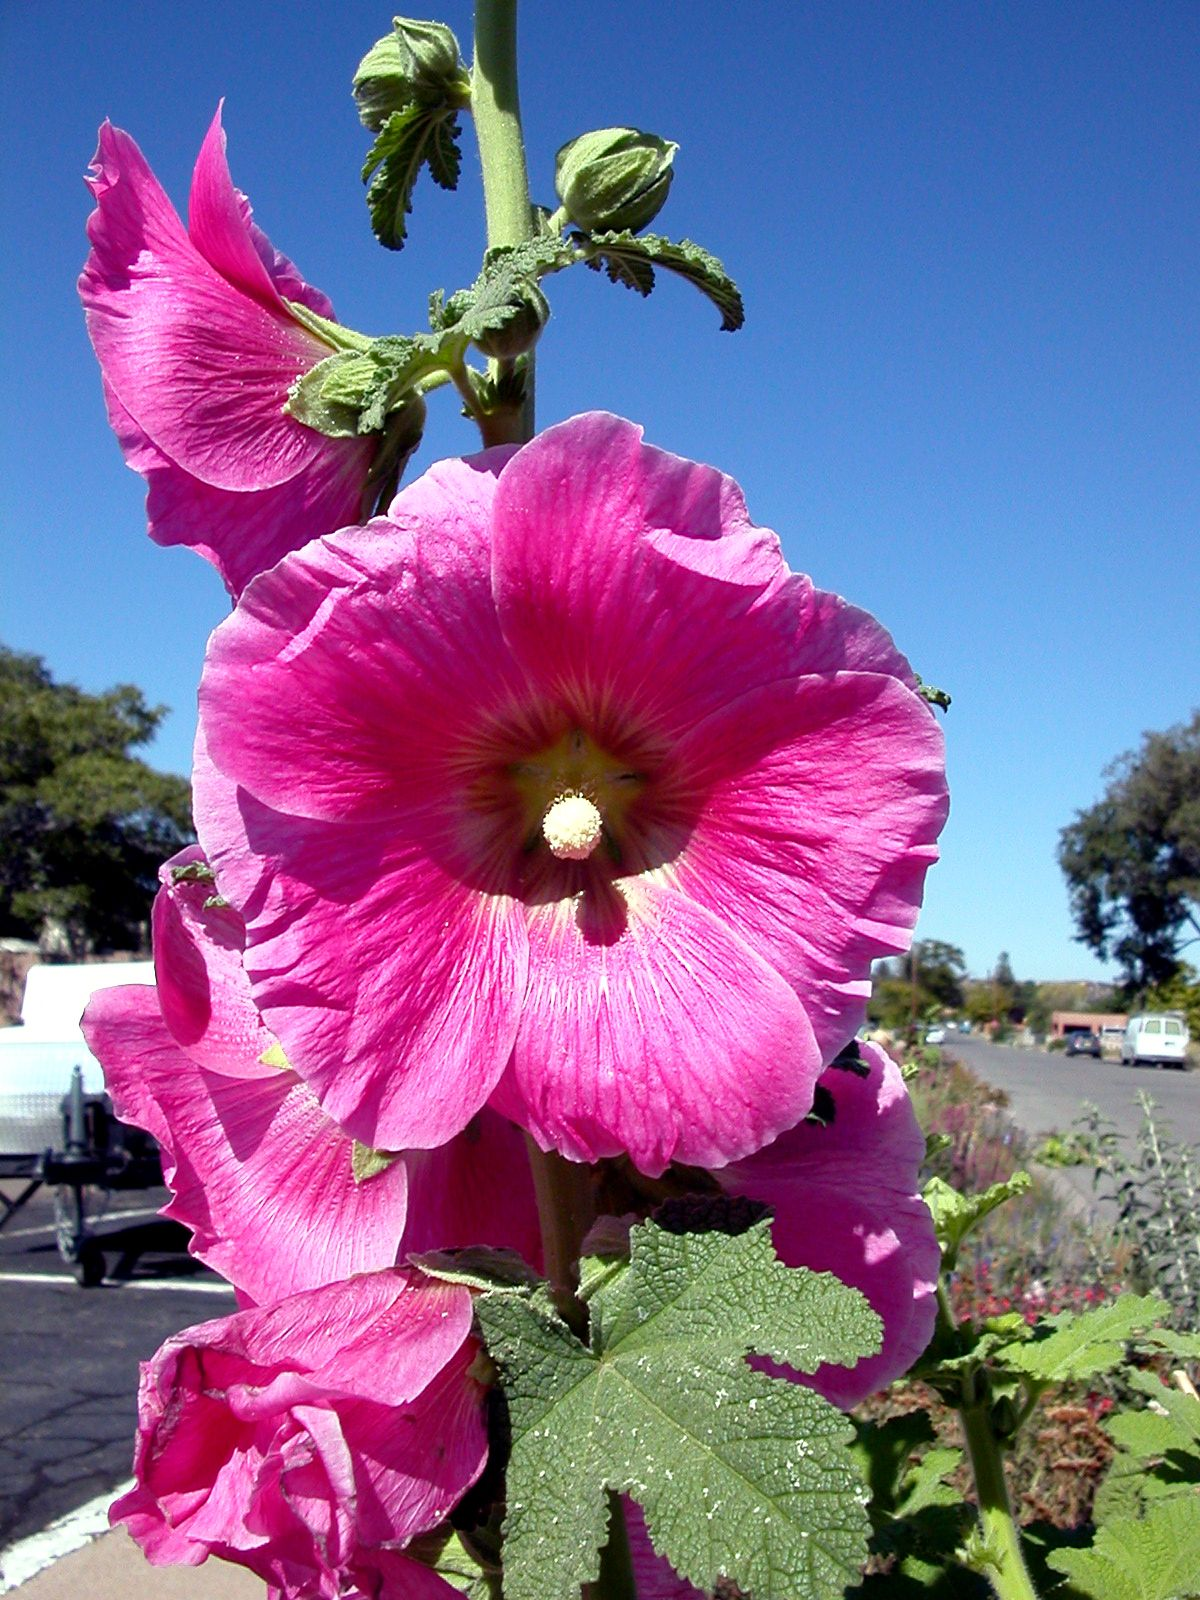 Pin By Hdi 19 On Southwest House With Images: These Gorgeous Hollyhocks Bloom All Summer In Santa Fe